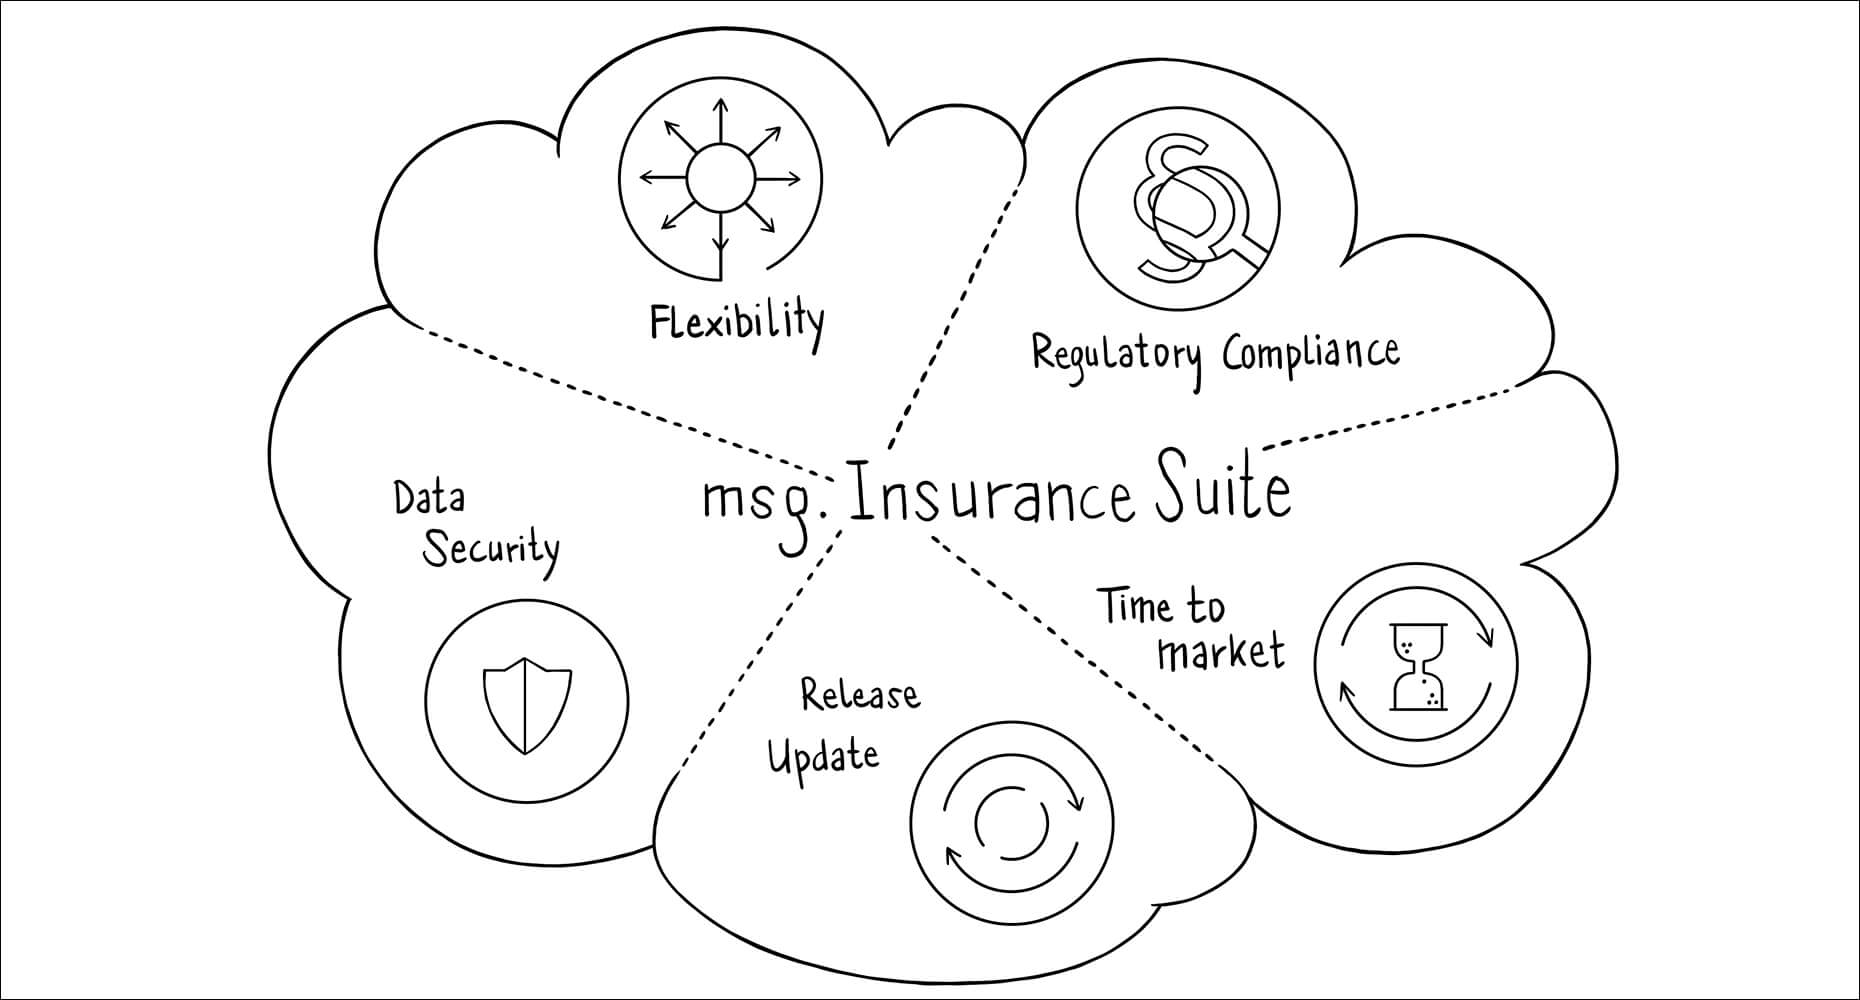 msg.Insurance Suite: Ready for Cloud/SaaS